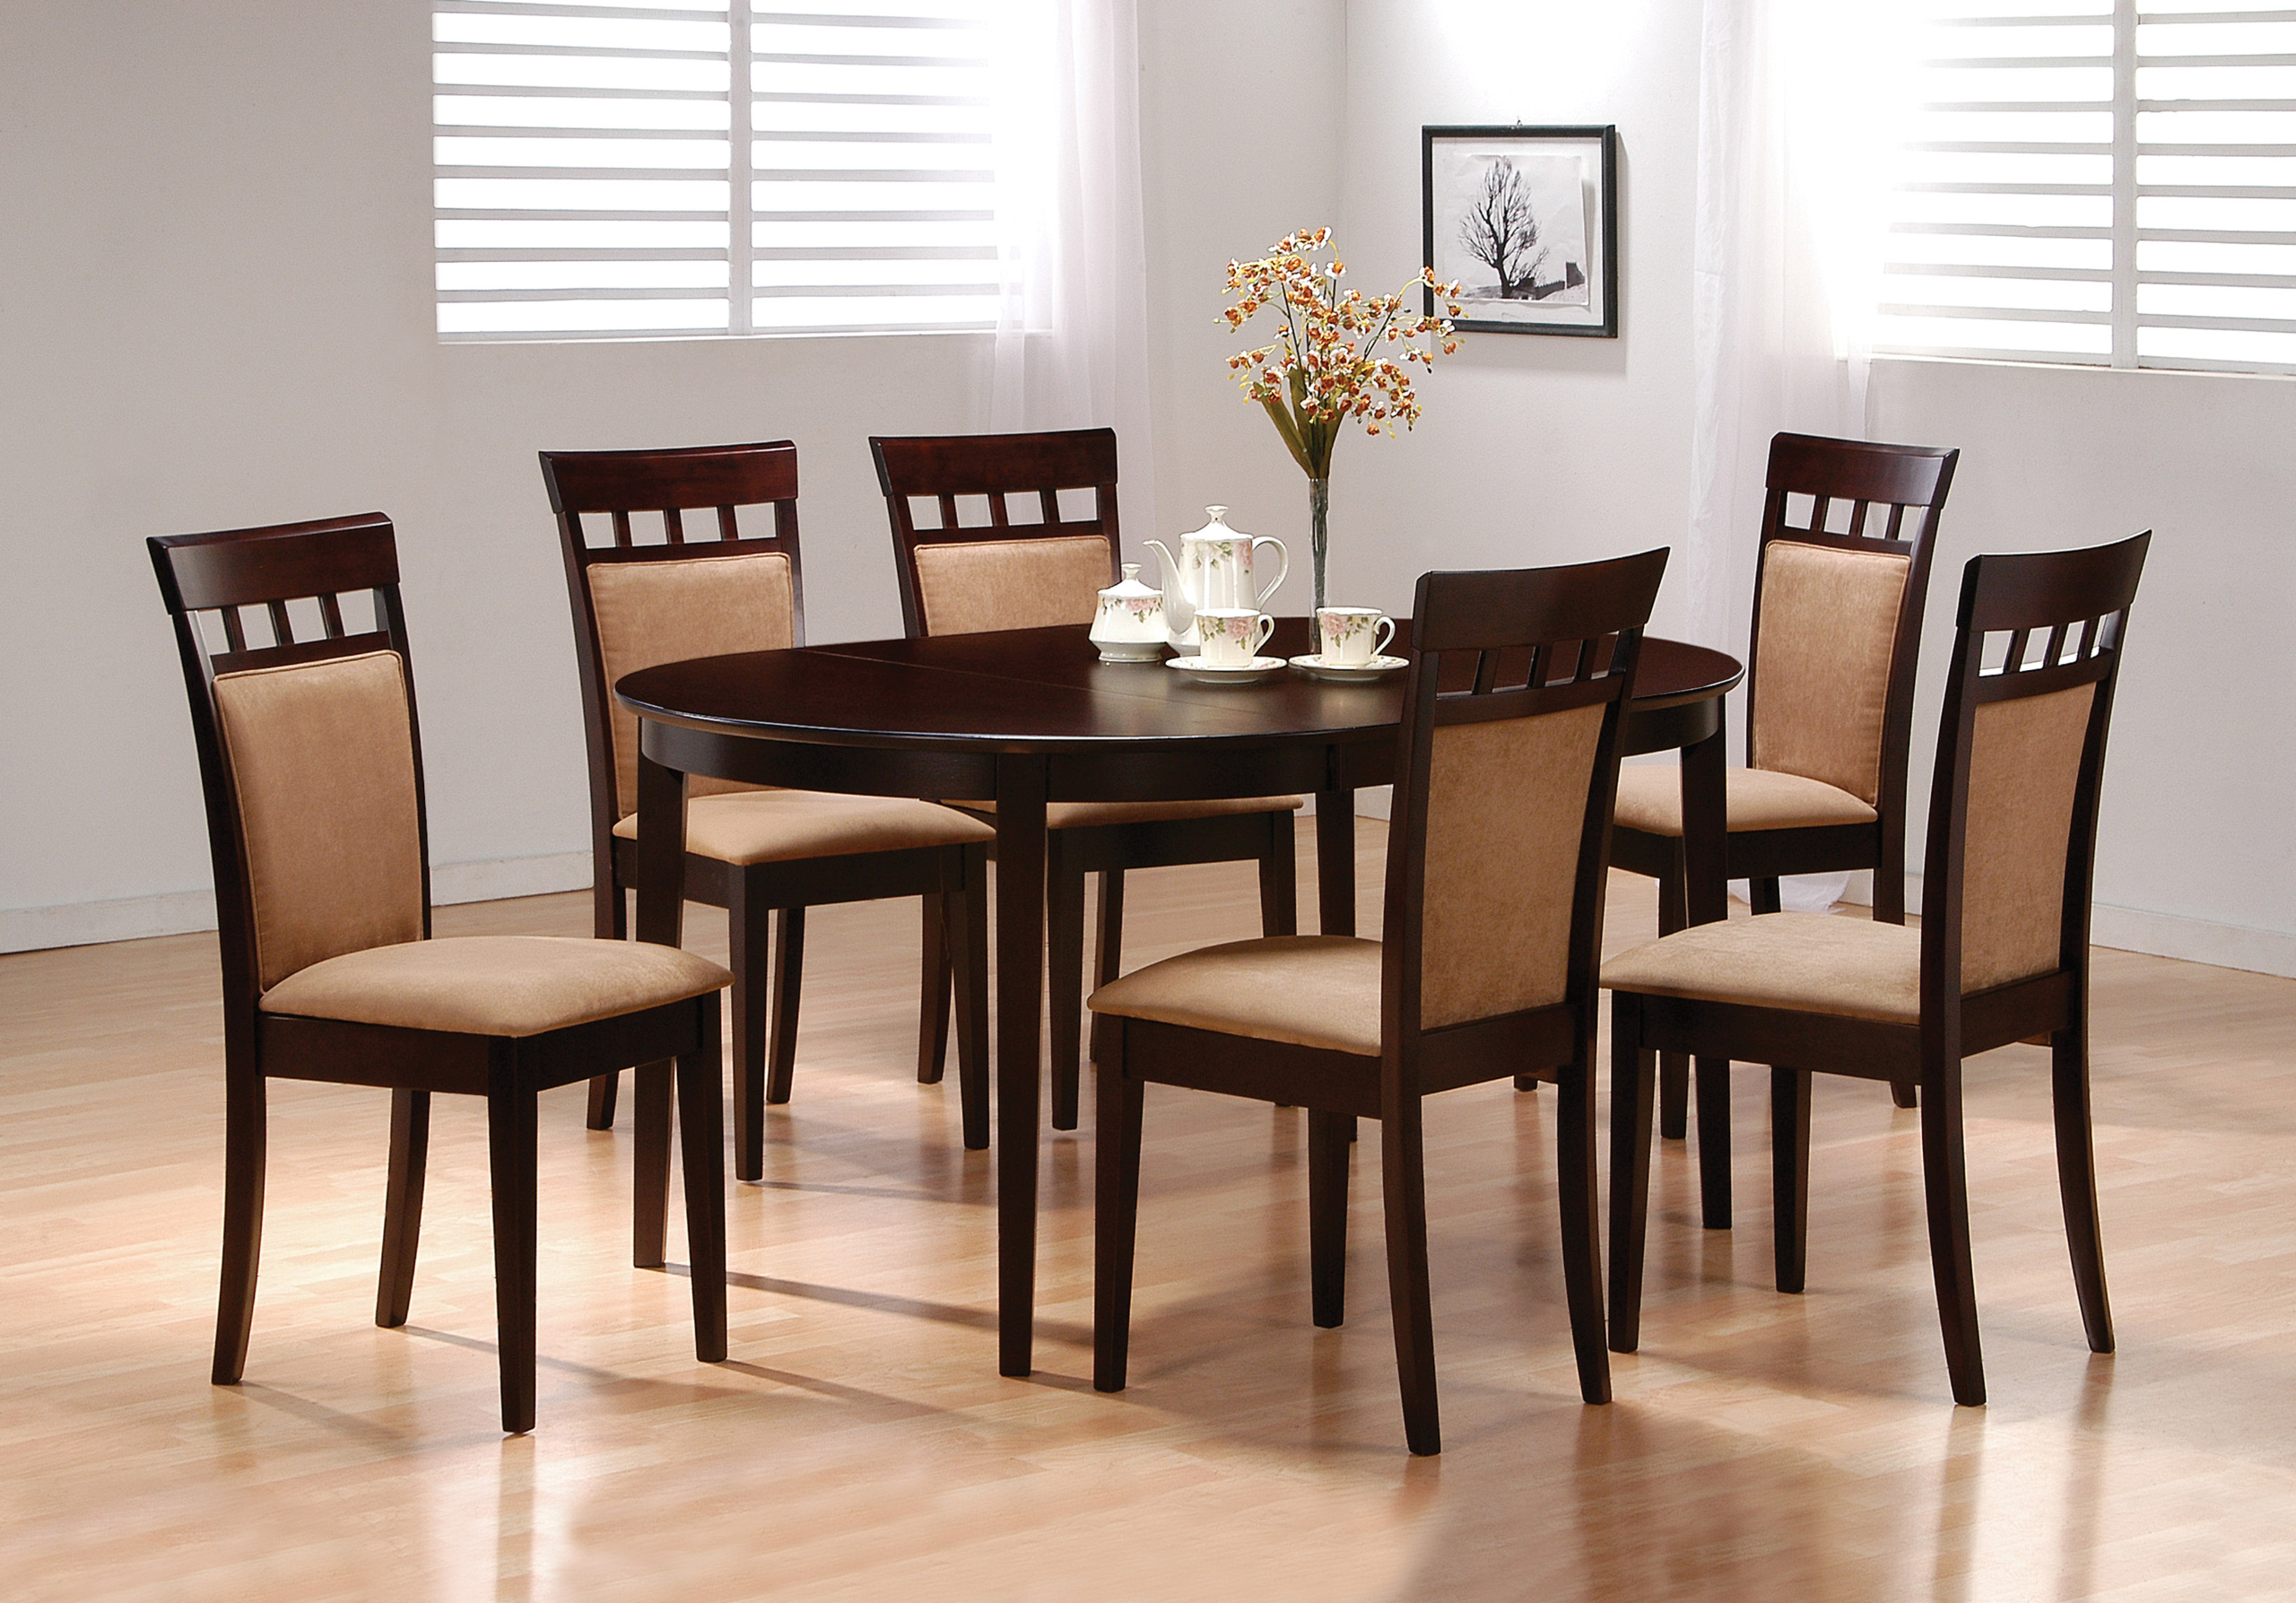 round table and chairs desk chair covers amazon dining for 6 visual hunt fabulous pics inspirations dievoon